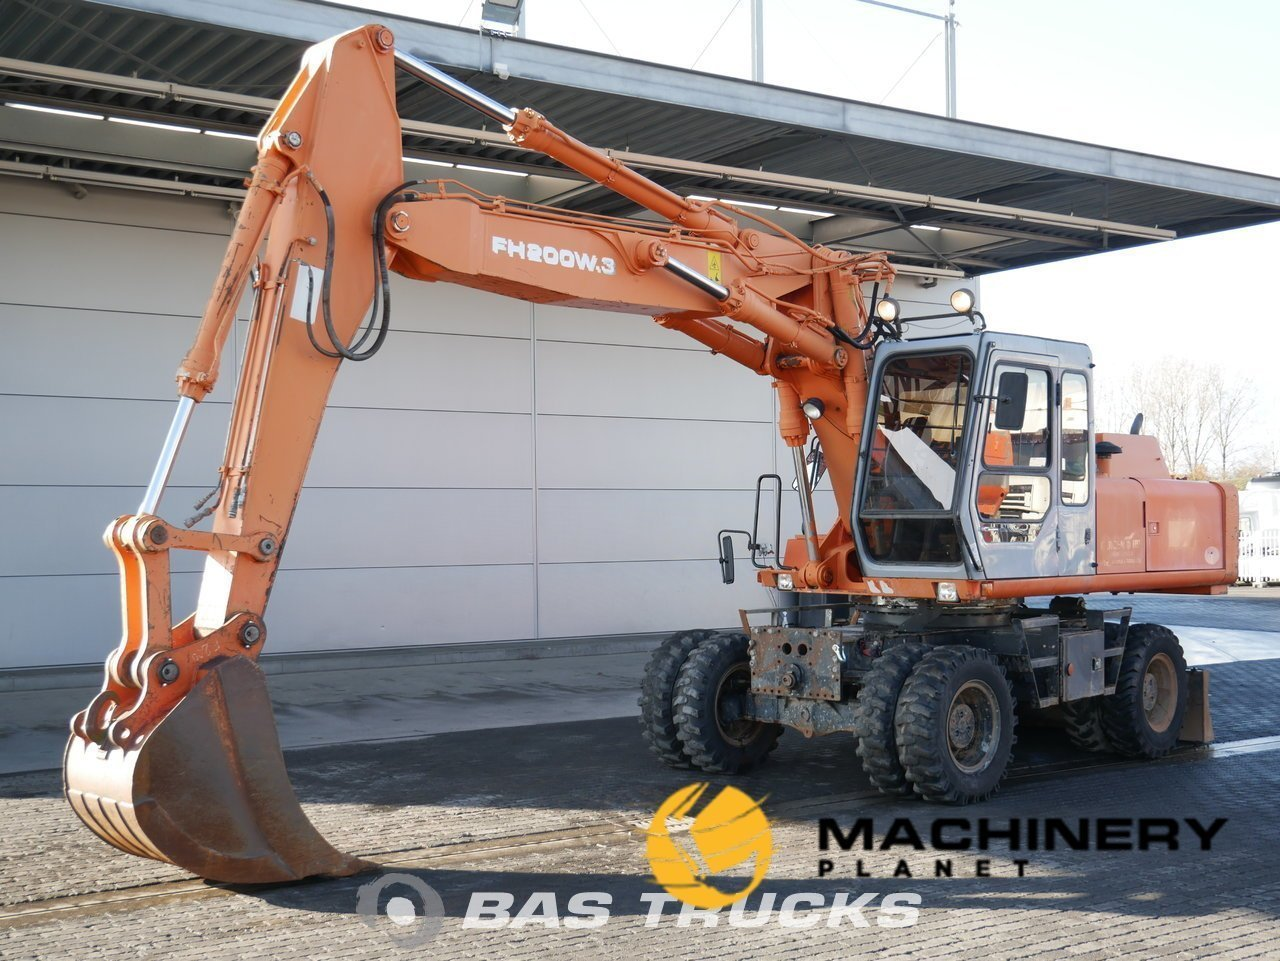 Used-Construction-equipment-Hitachi-FH-200-3-4X4-1996_143201_1-1554197446506_5ca32bc67b91c-1.jpg